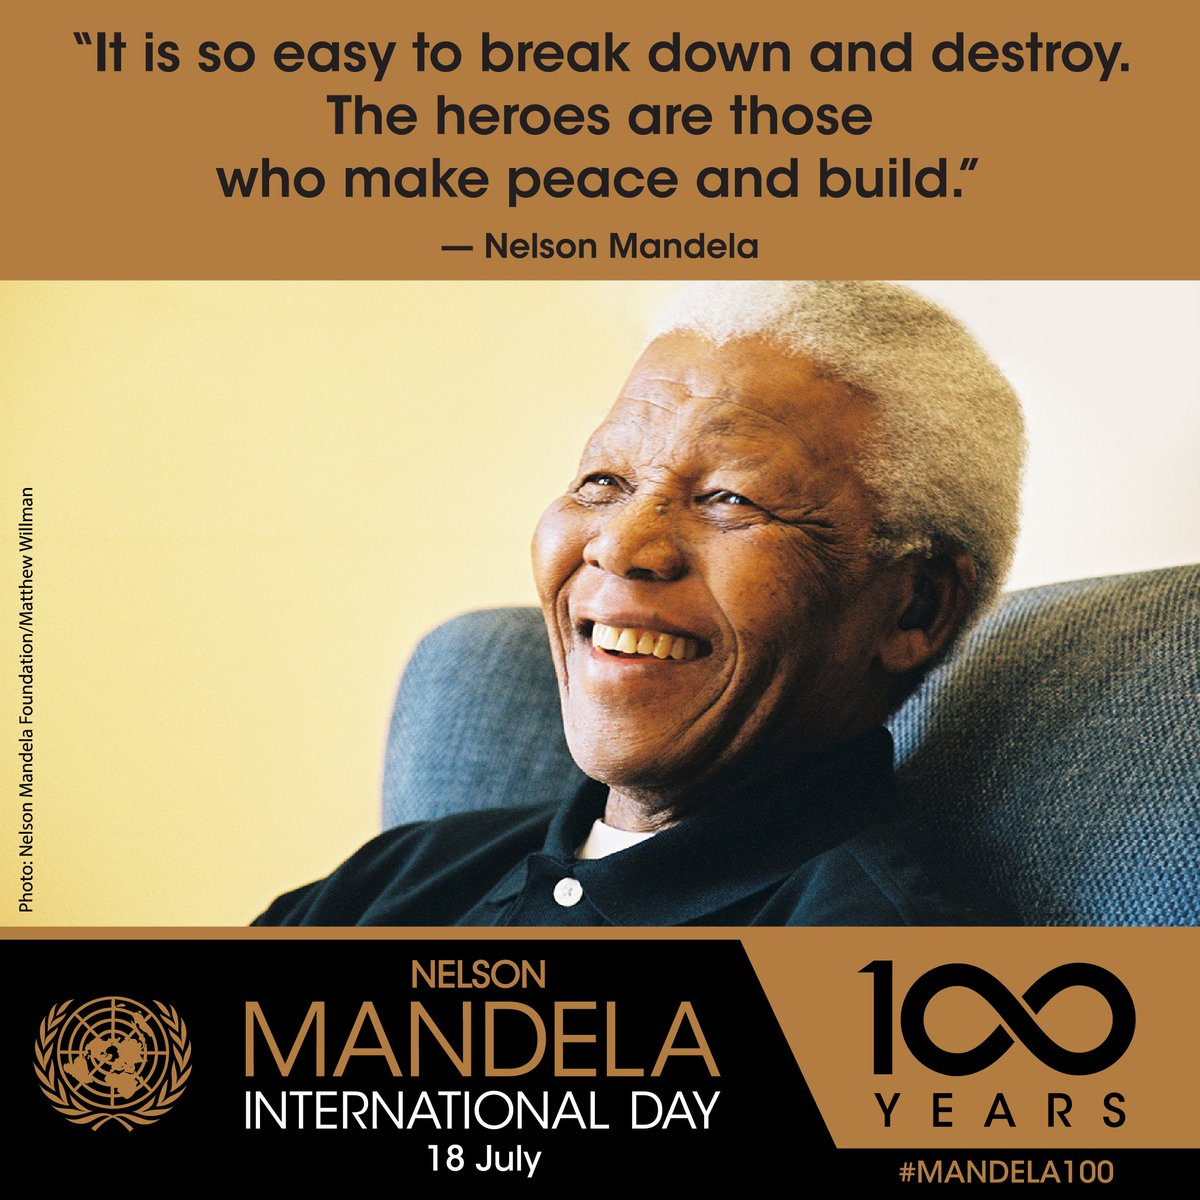 'Nelson Mandela was a towering global advocate for justice & equality. He continues to inspire the world through his example of courage & compassion.' --  on Wedn@antonioguterresesday's  #MandelaDayhttps://t.co/4Png9eEZiD